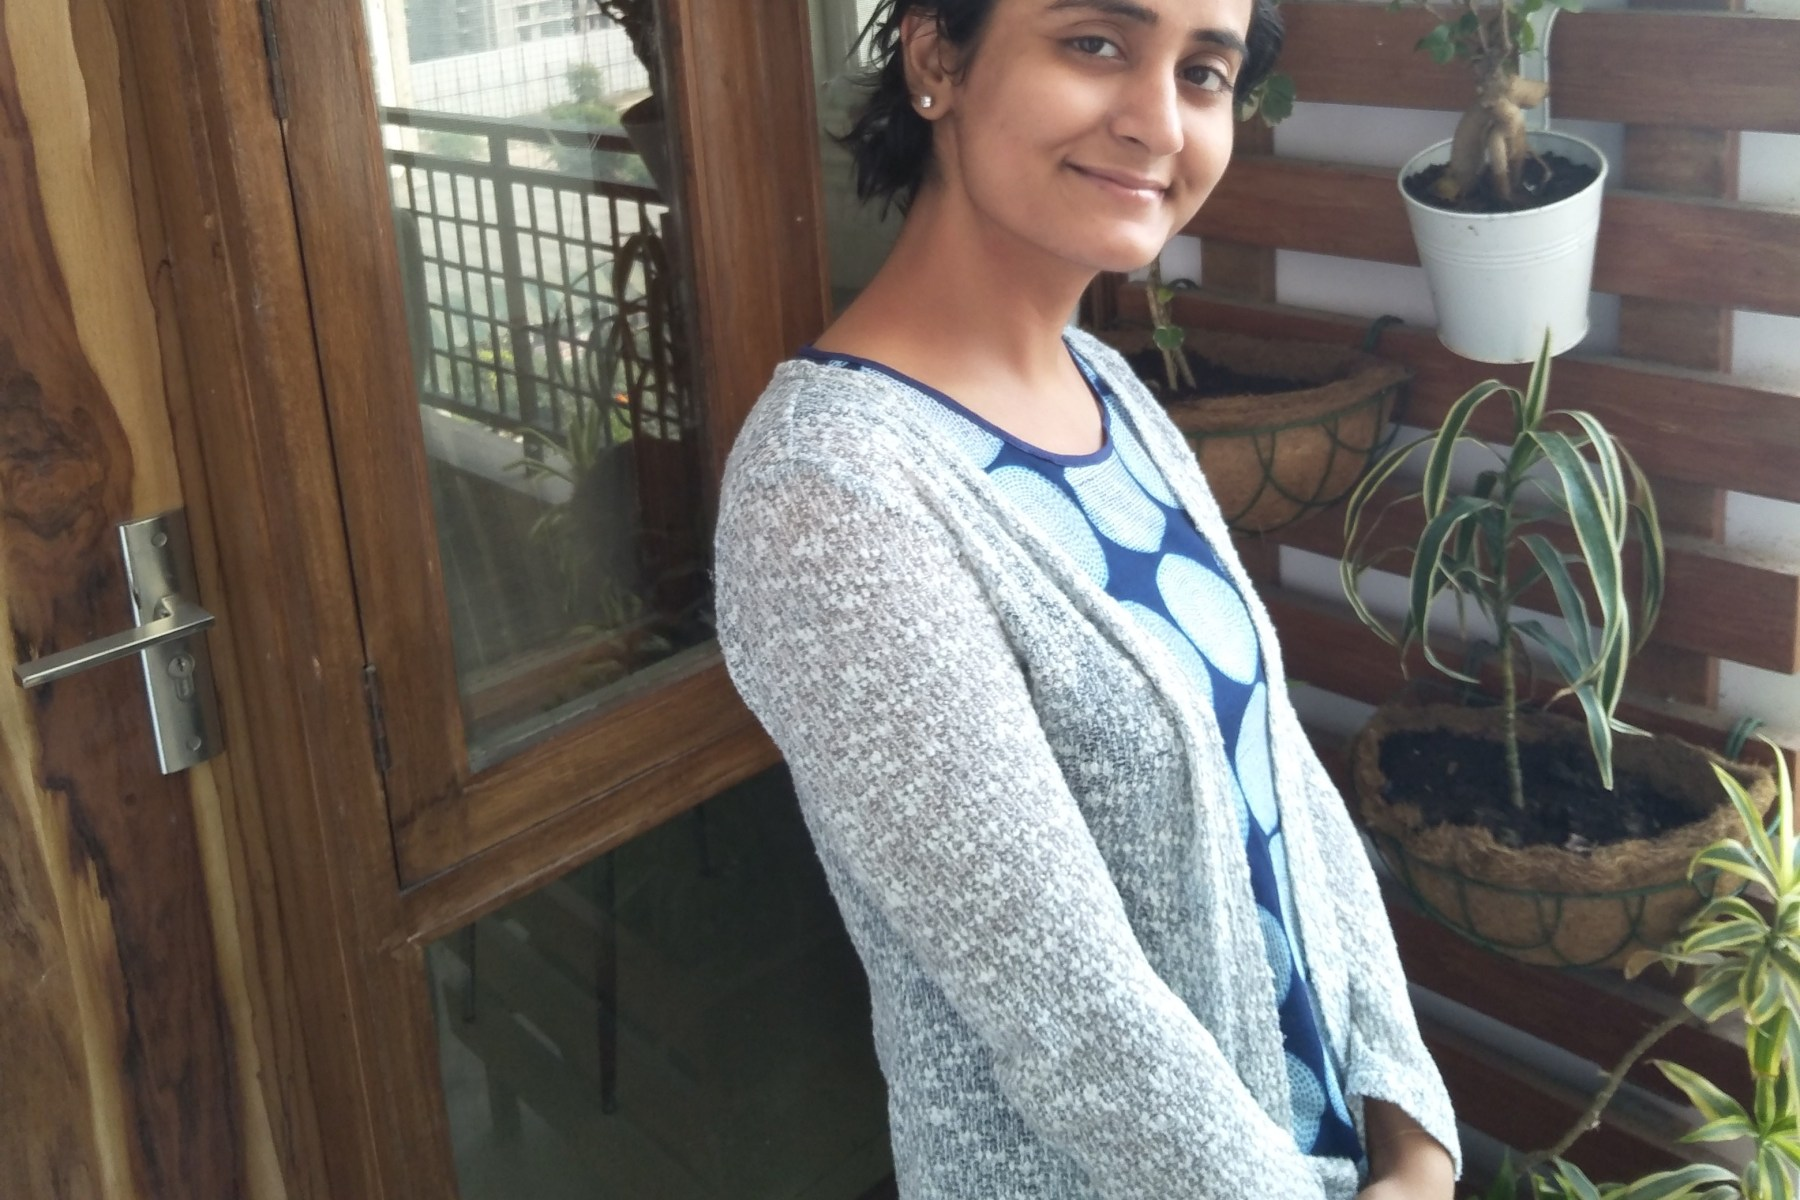 Parul Thukral today after overcoming stage 3 breast cancer